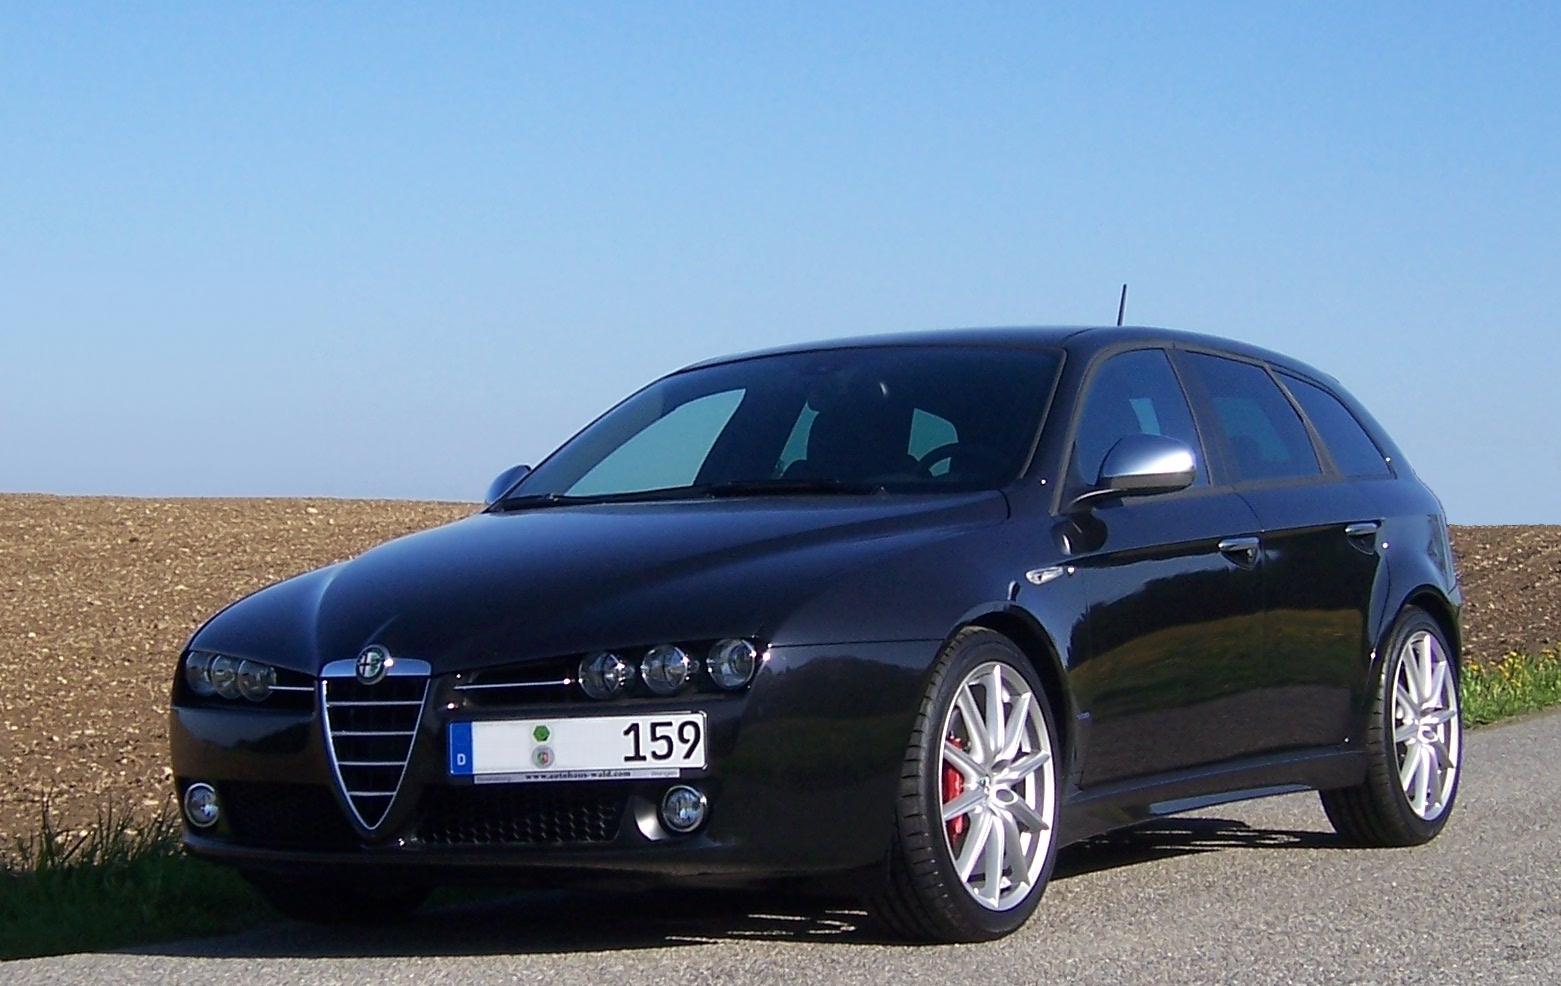 Alfa romeo alfetta photo - 3